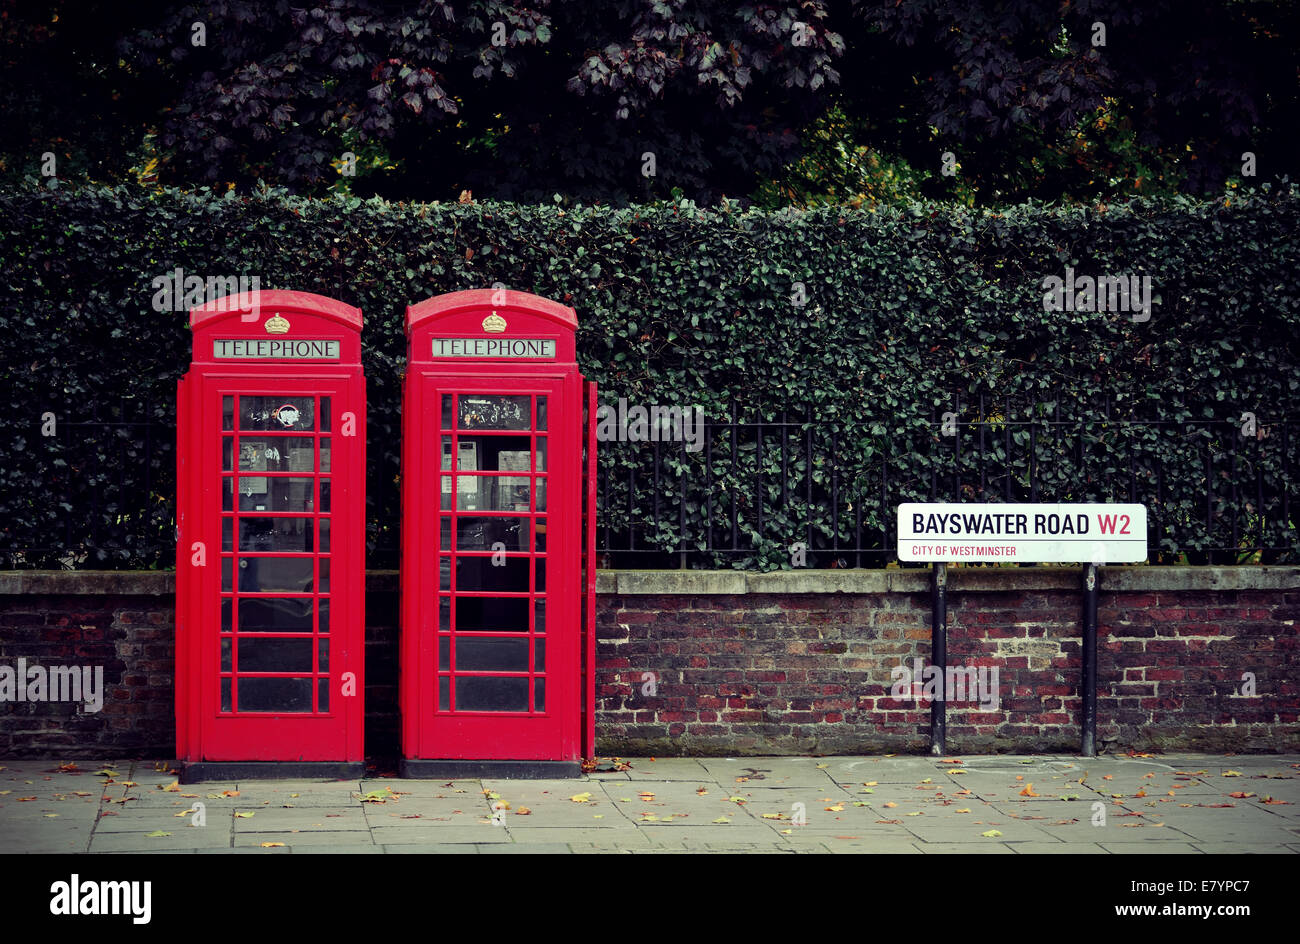 Telephone box in London street. - Stock Image